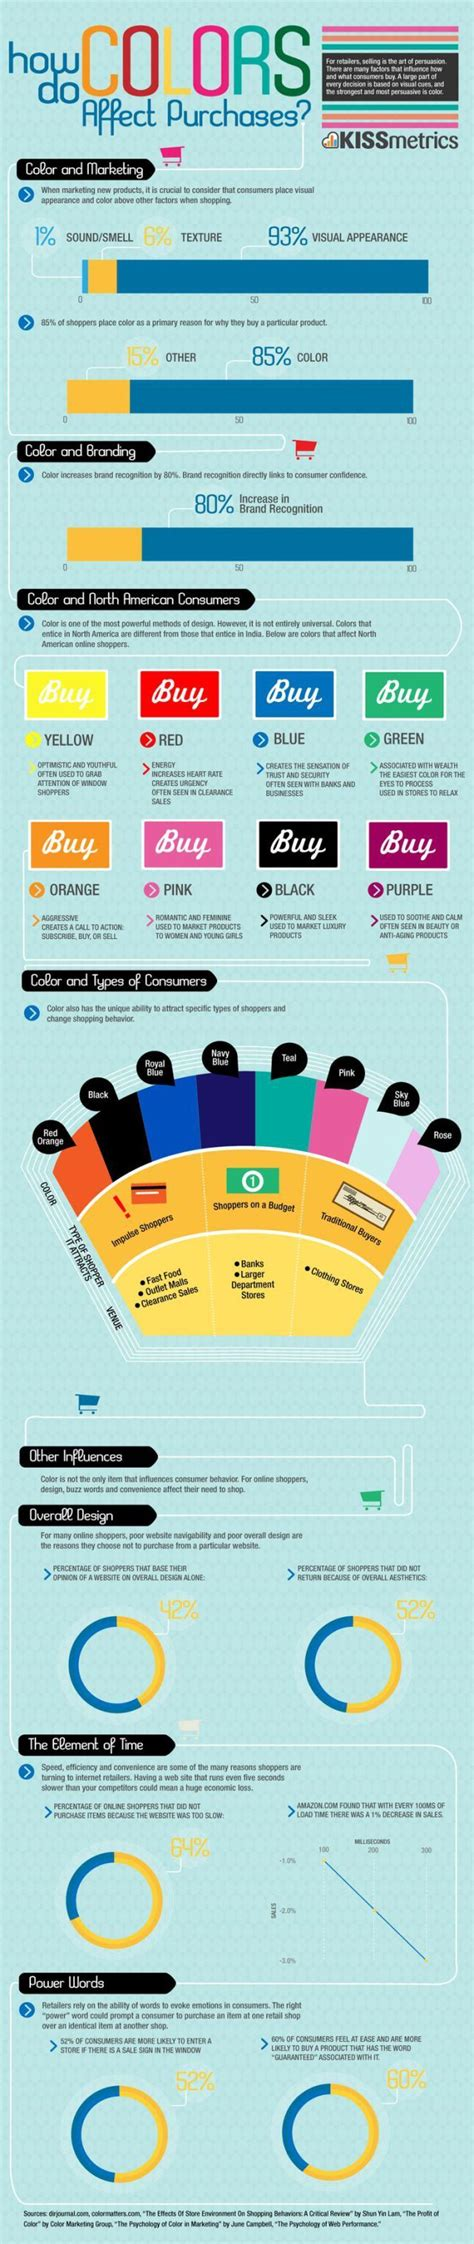 how colors affect you psychology psychology how do colors affect purchases infographic jobloving com your